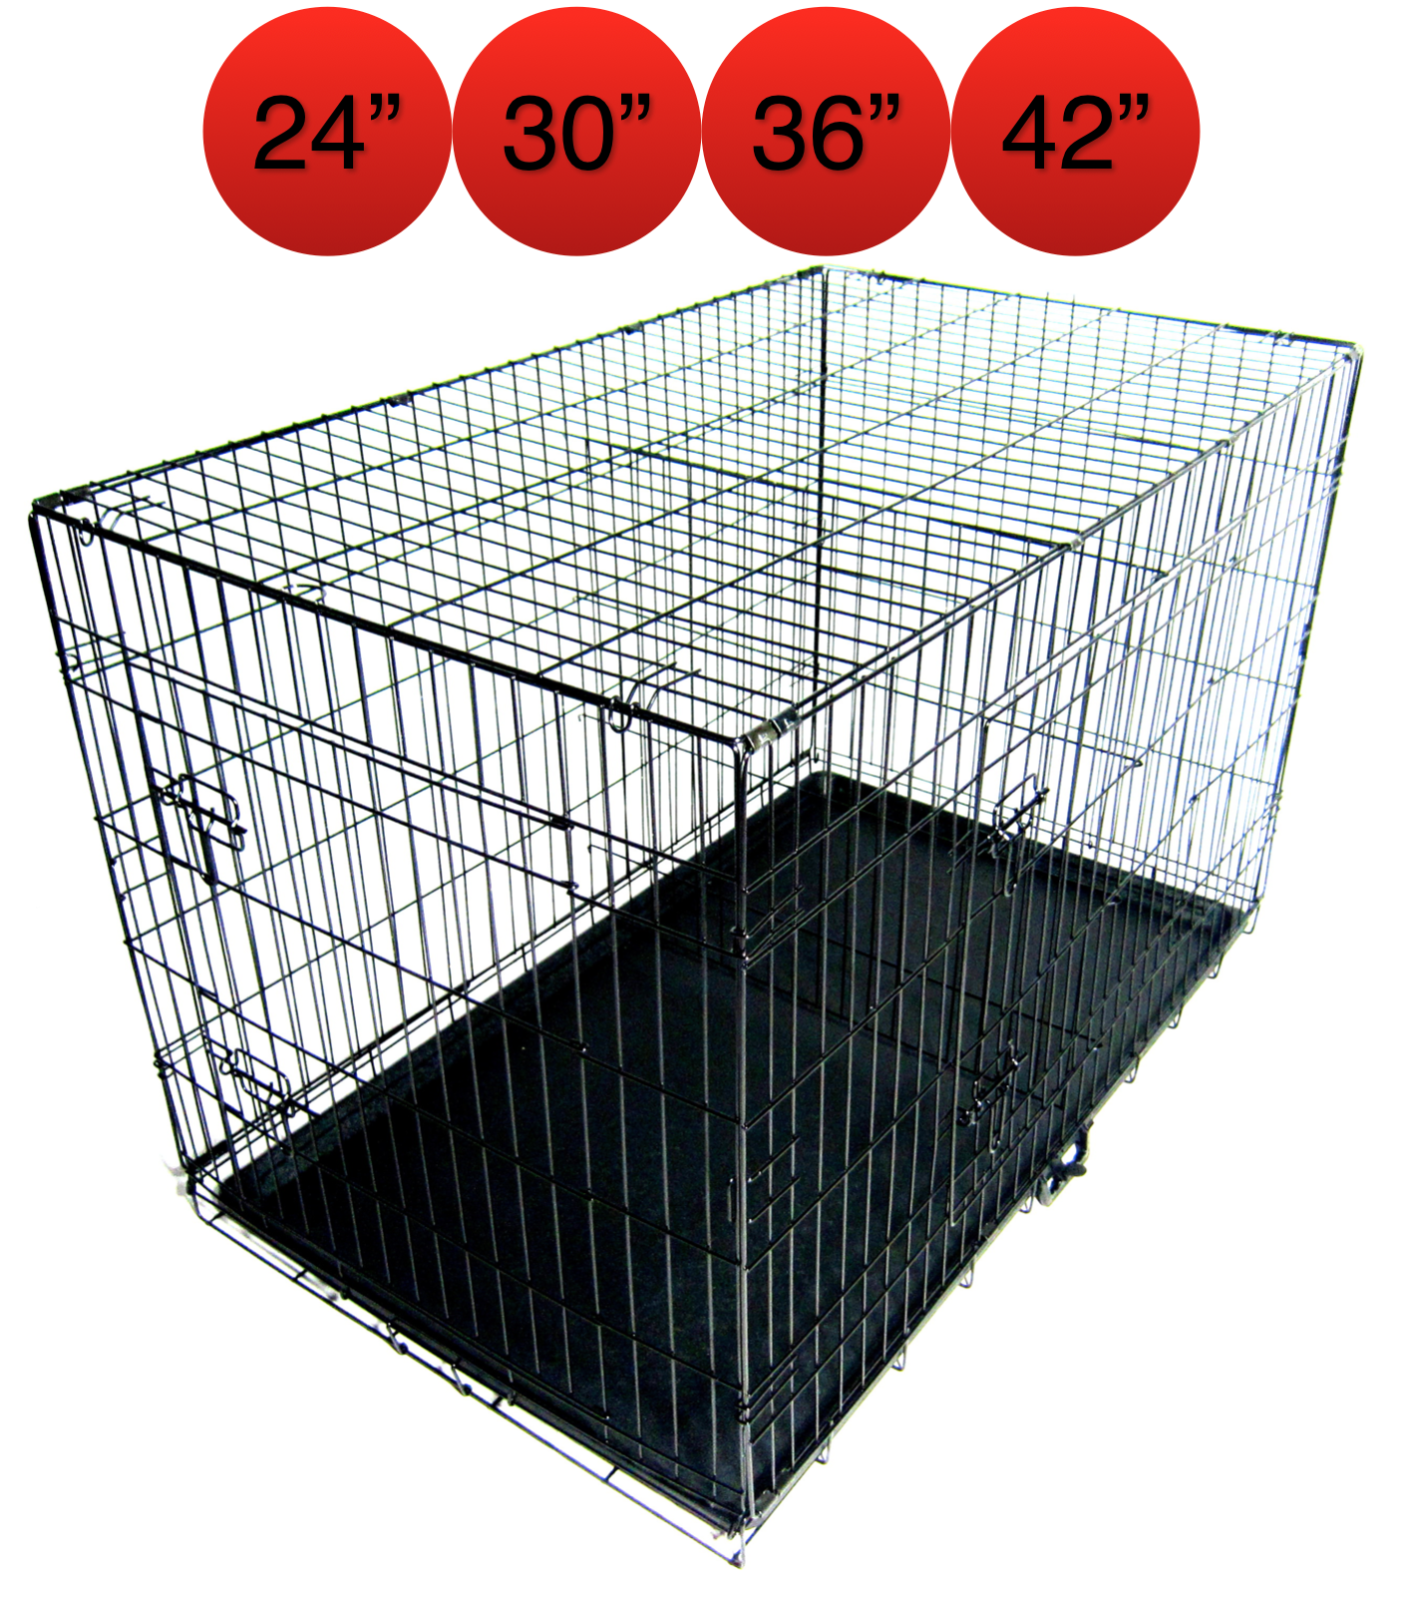 Folding Metal Dog Cage By Mr Barker Puppy Training Crates 5 sizes 24-42 Inch 3